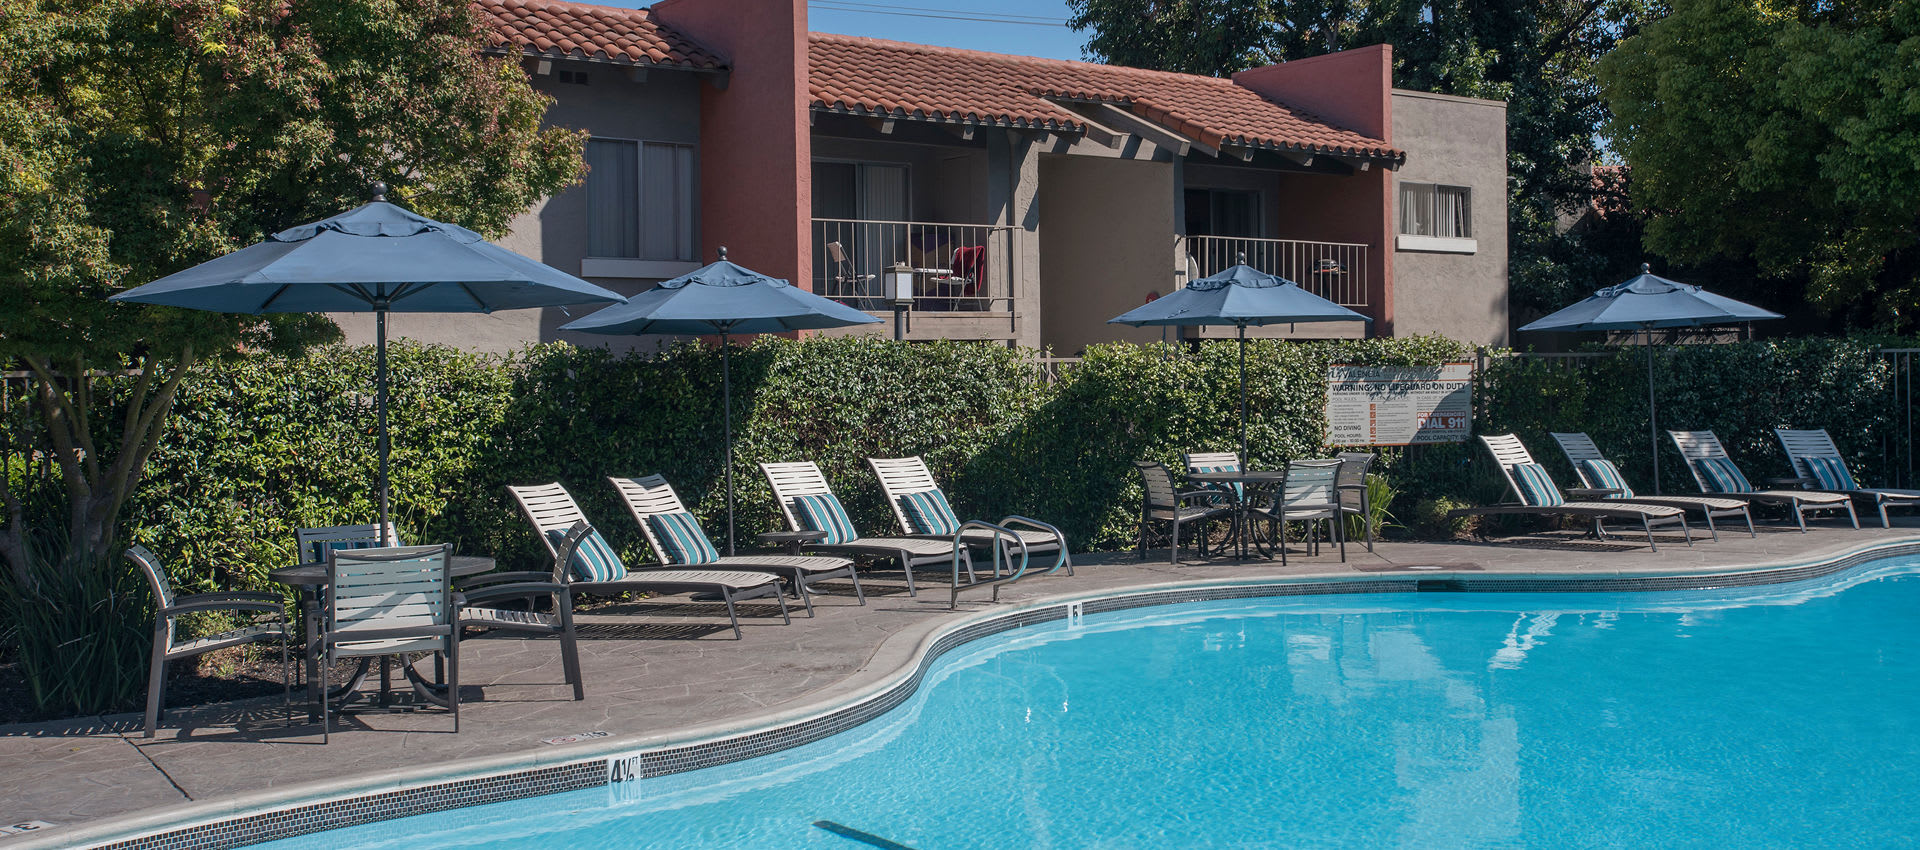 See what we have to offer by visiting La Valencia Apartment Homes's amenities page.